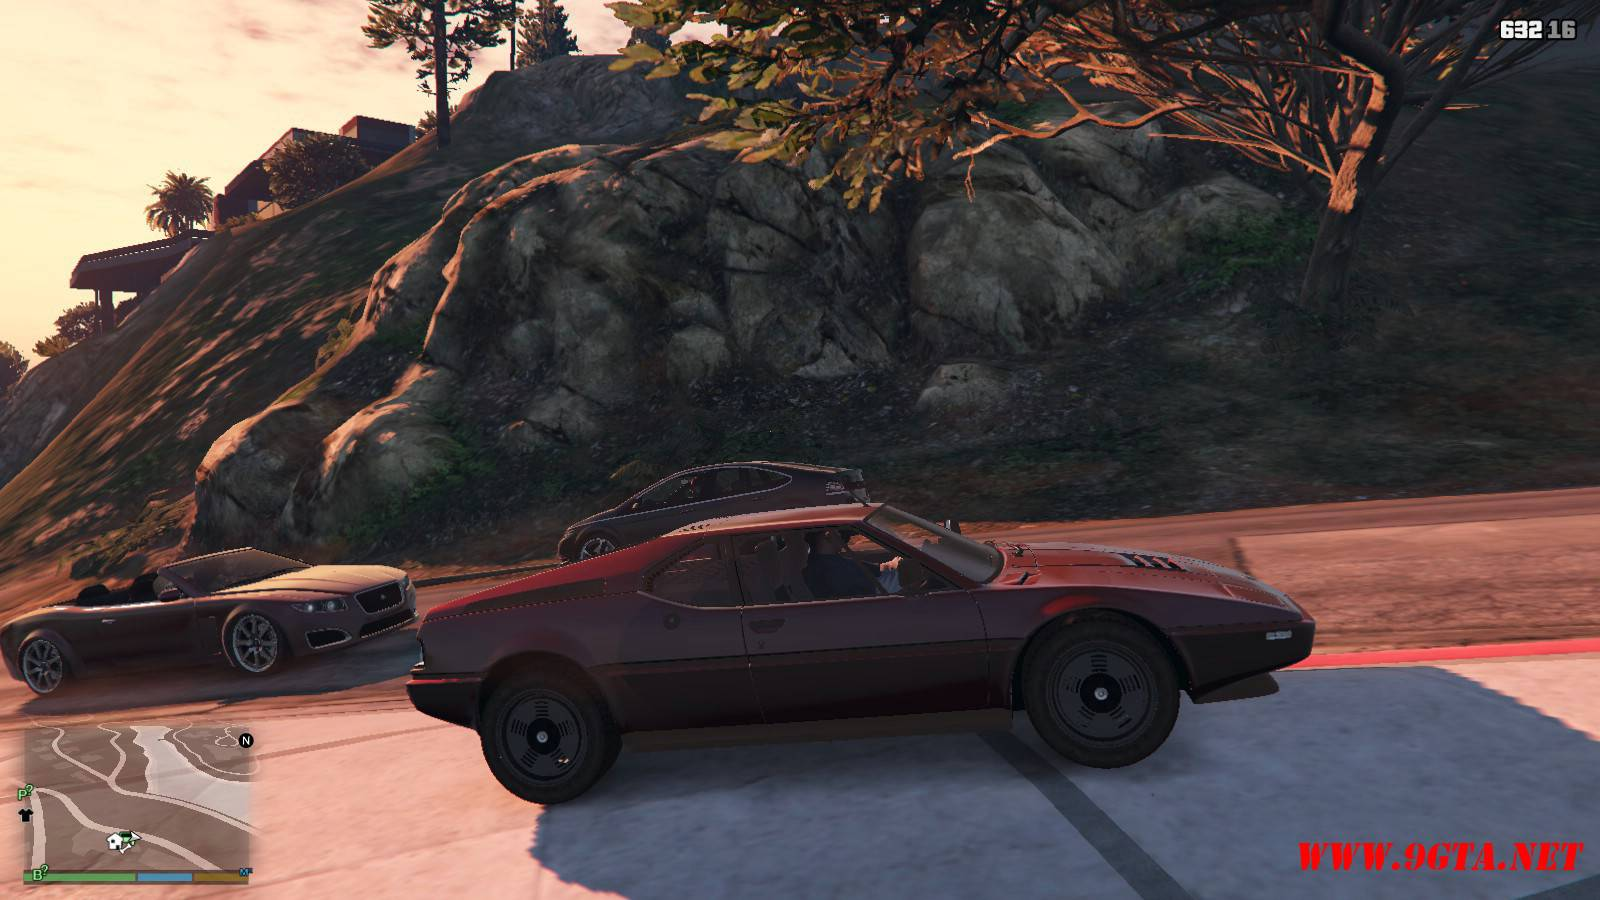 1981 BMW M1 v2.0 Mod For GTA5 (4)